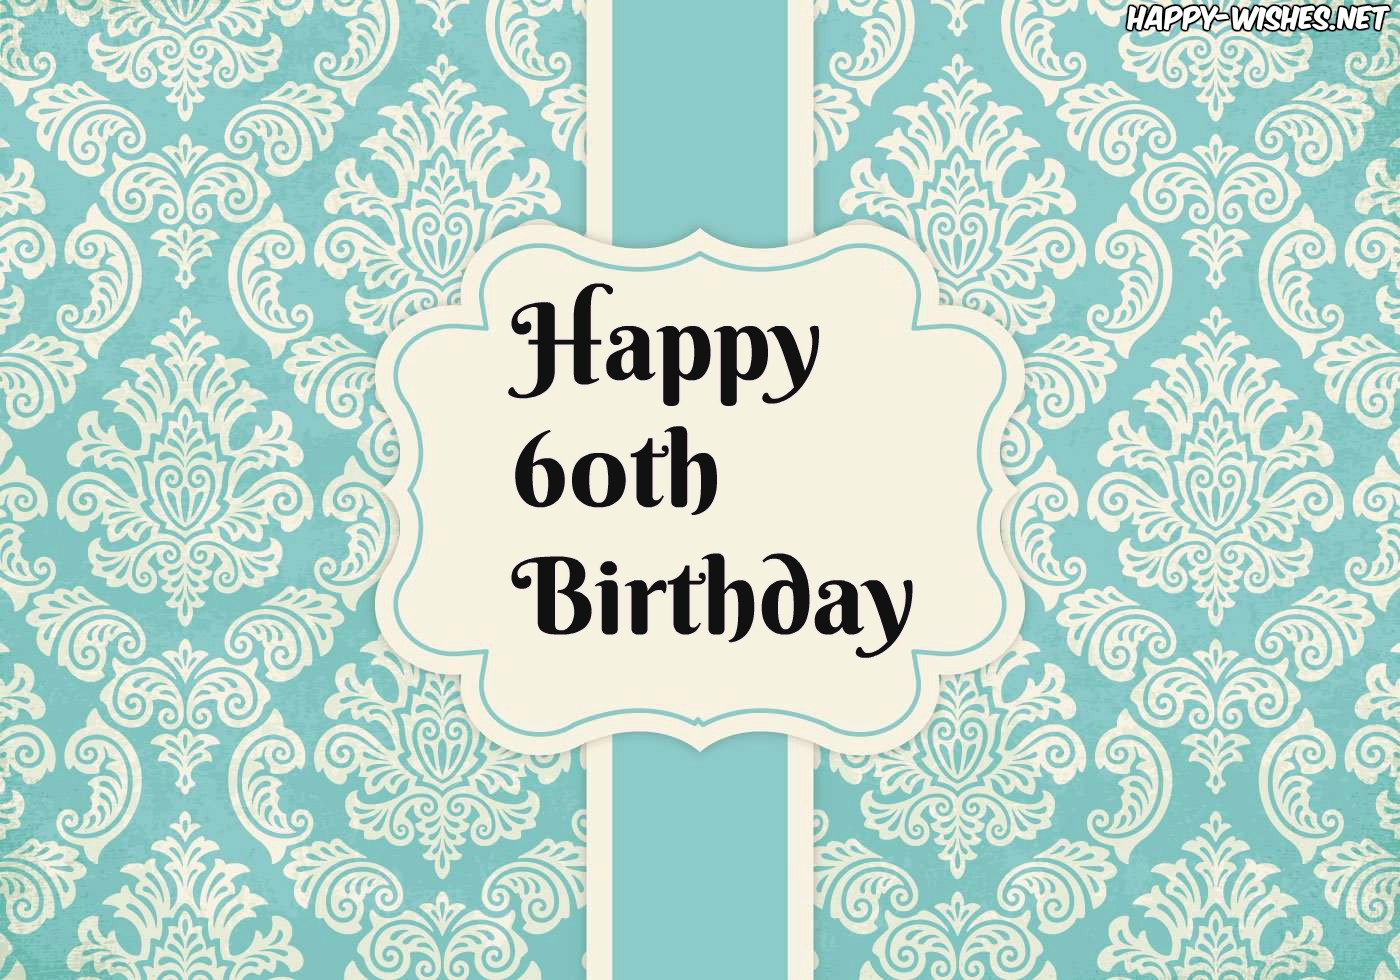 We Have All The Beautiful Images That You Can Use To Wish 60th Birthday Your Near And Dear Ones They Will Really Feel Happy When Receive